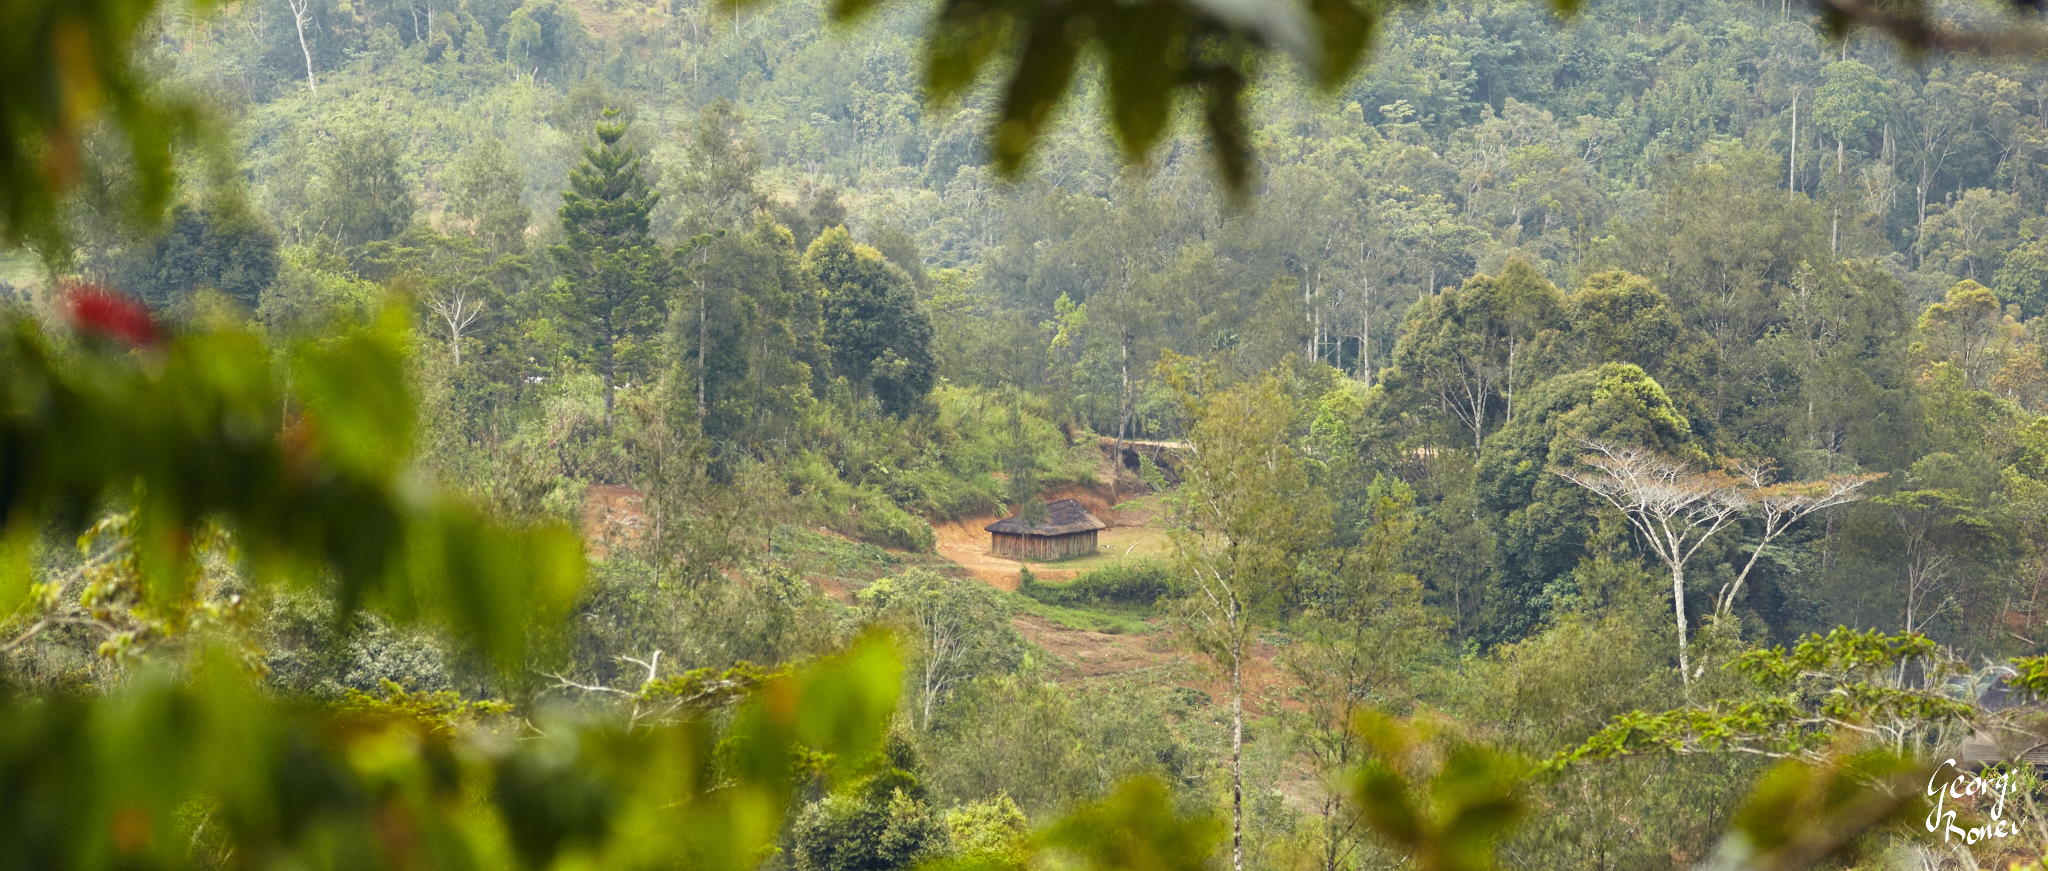 DIWAI VILLAGE IS LOCATED IN THE JUNGLE OF PAPUA NEW GUINEA